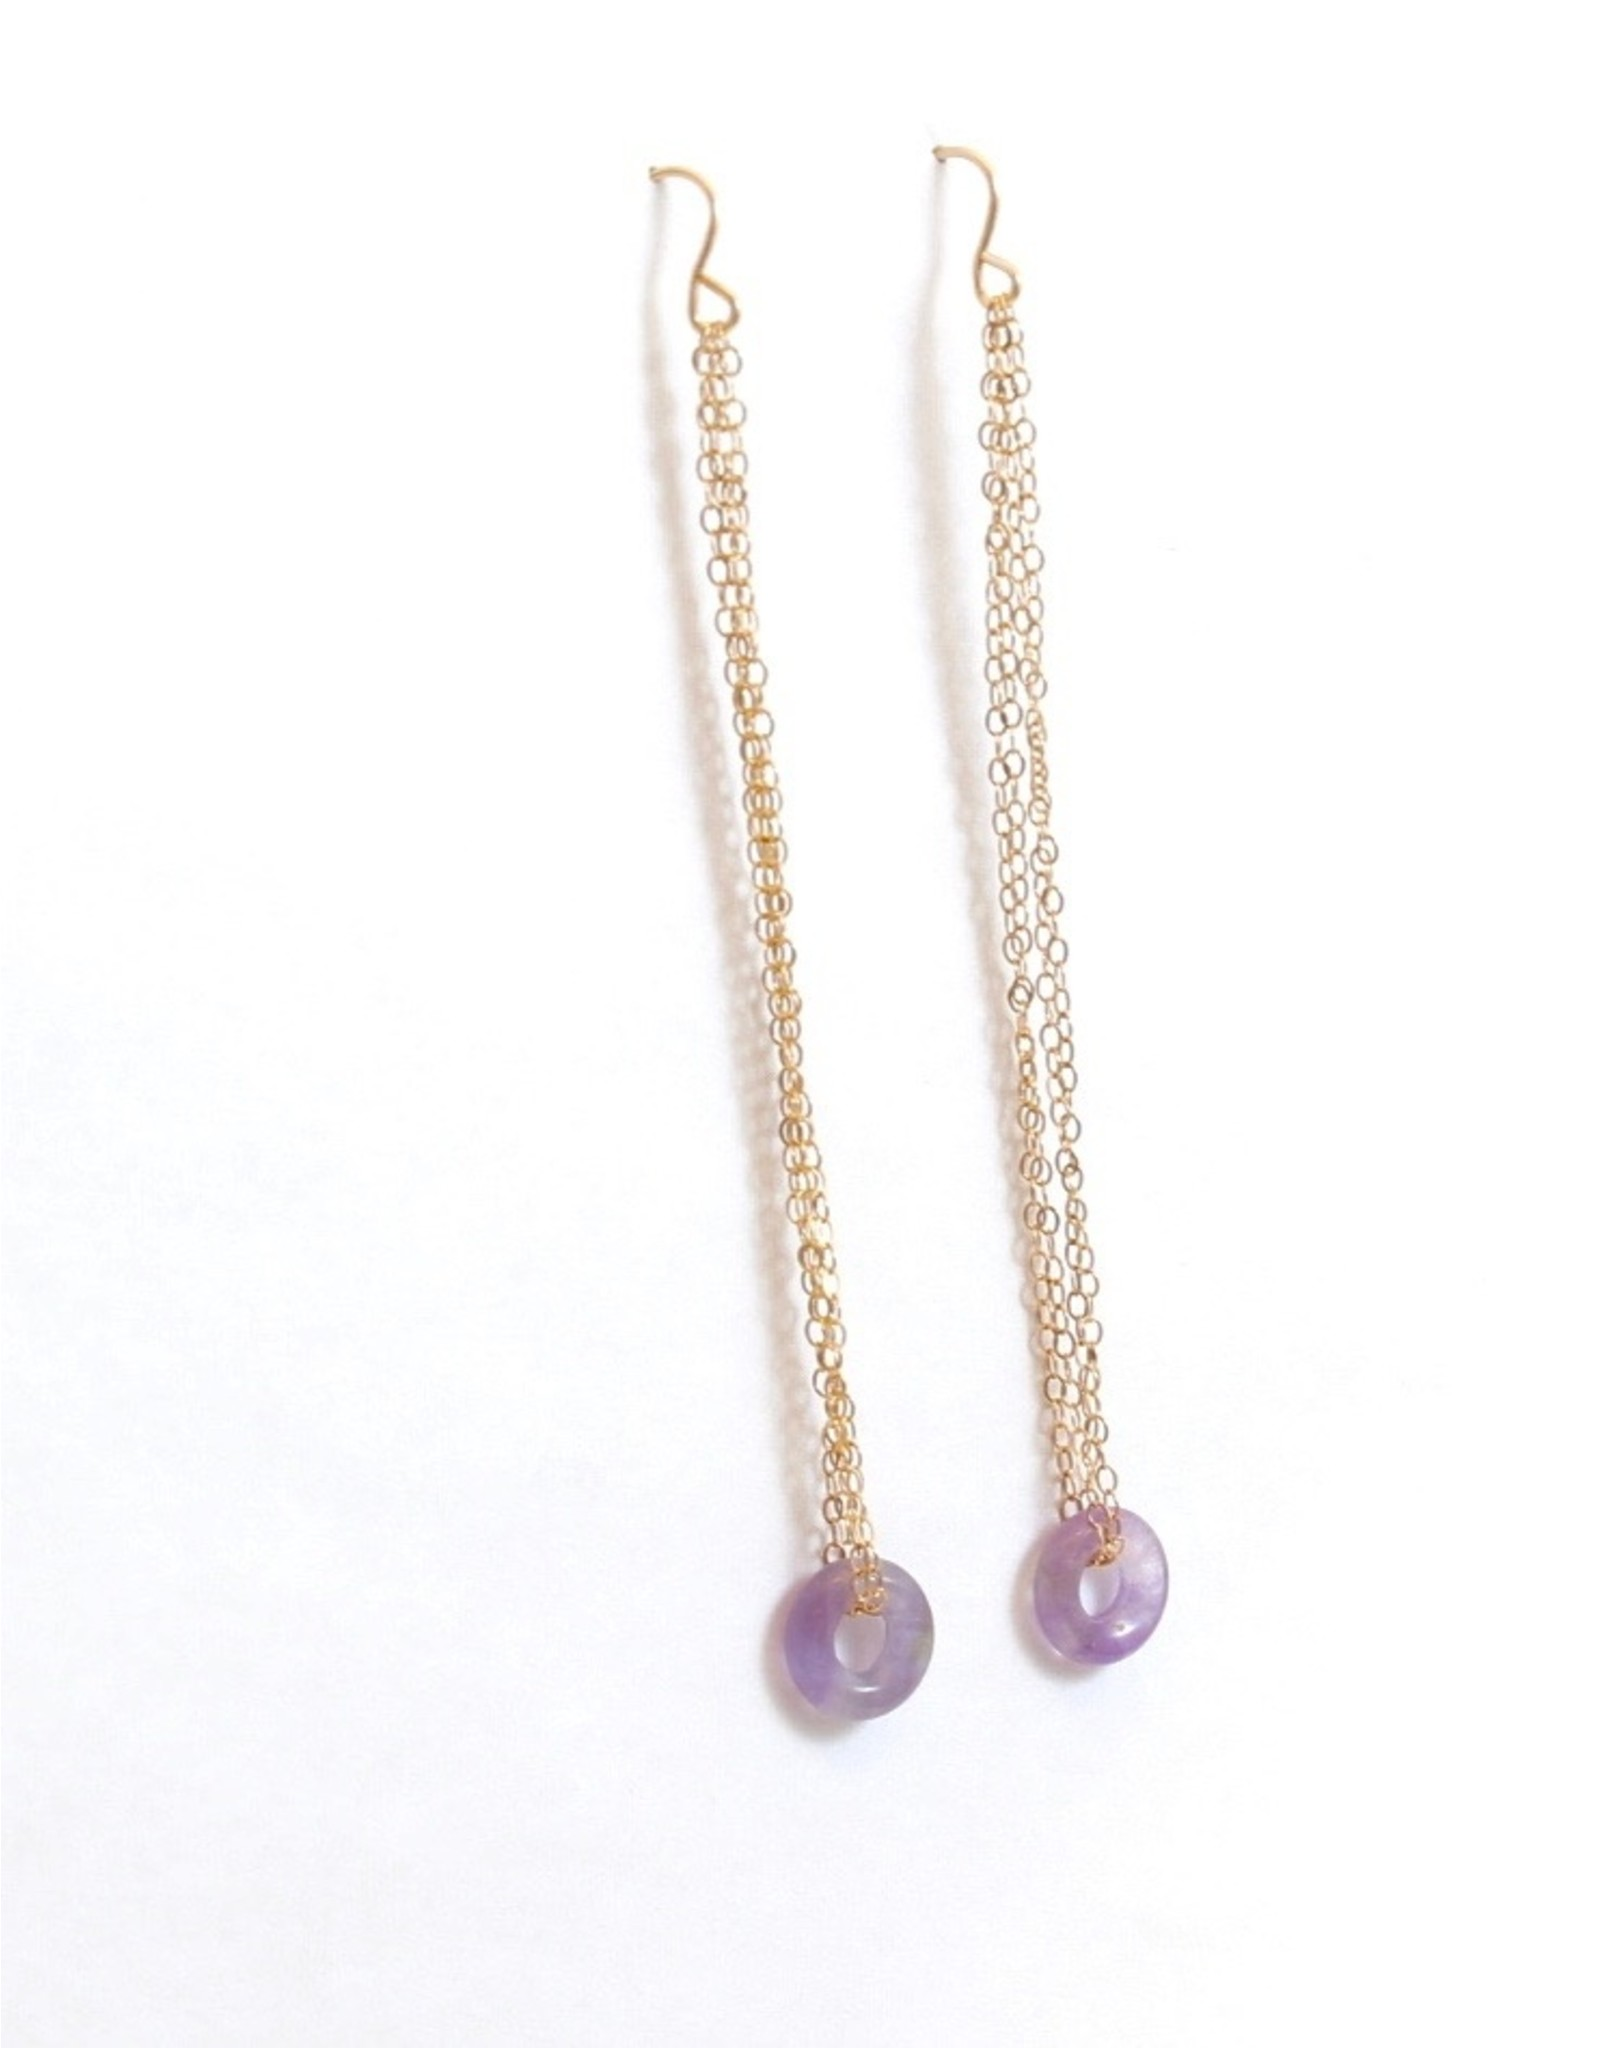 Jacqueline Finn Lilac Drop Earrings by Jacqueline Finn